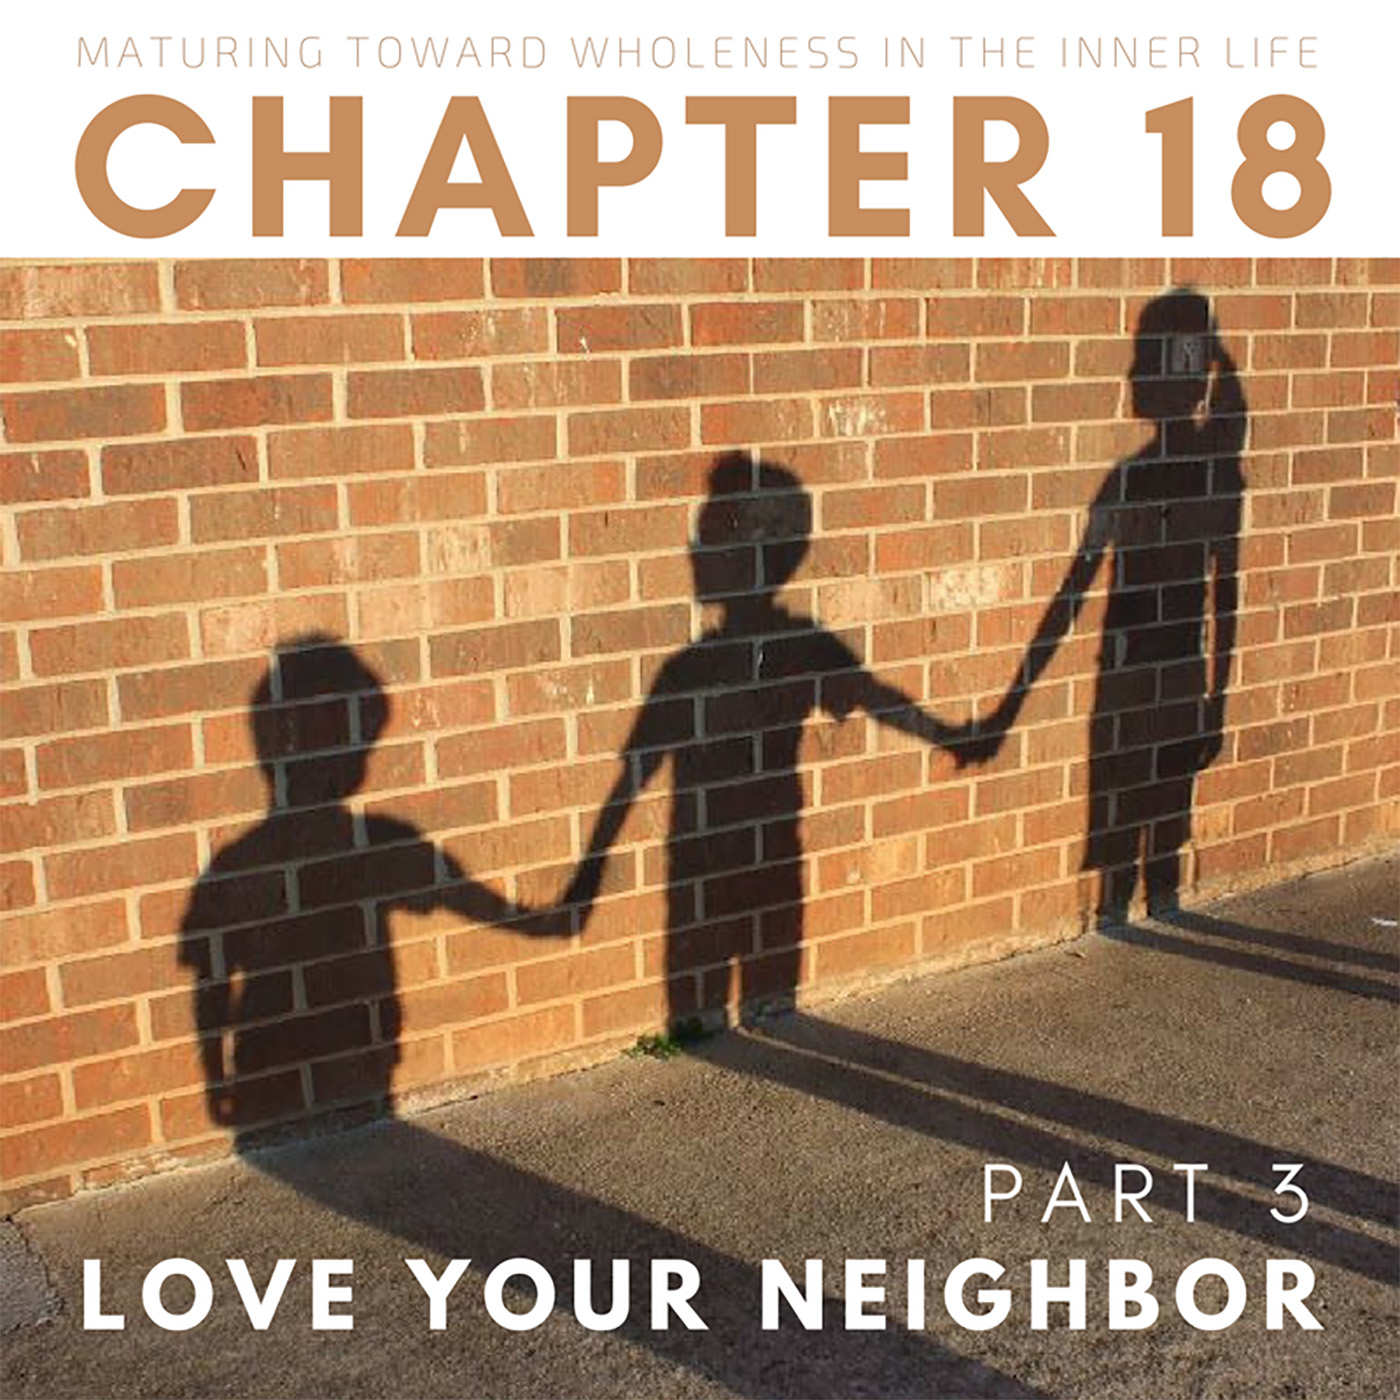 Love Your Neighbor: Personal Relationships (3 OF 3)